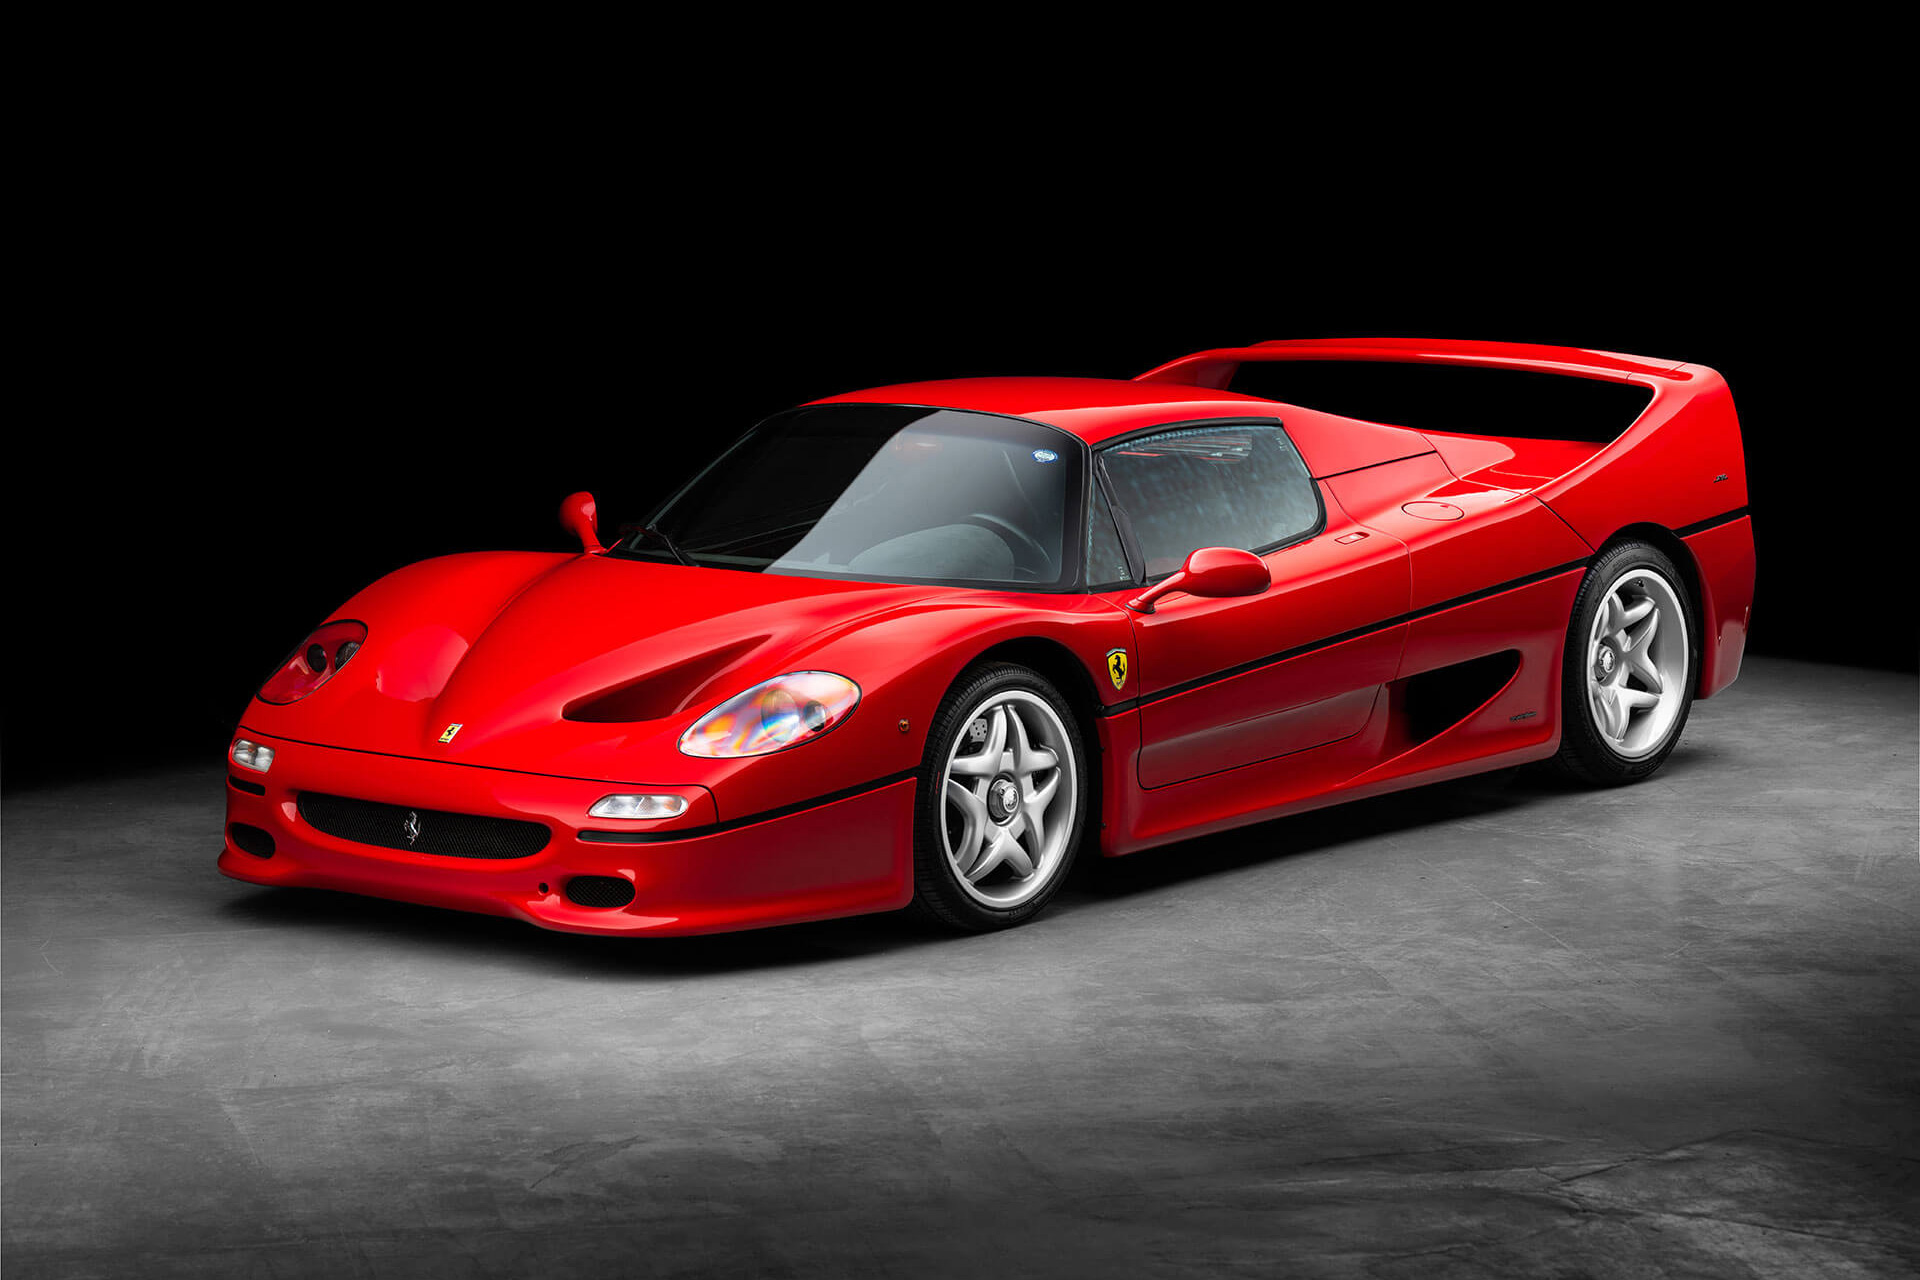 More Than $270,000 Were Spent On This Ferrari F50 To Bring It To Tip-Top  Shape | Carscoops